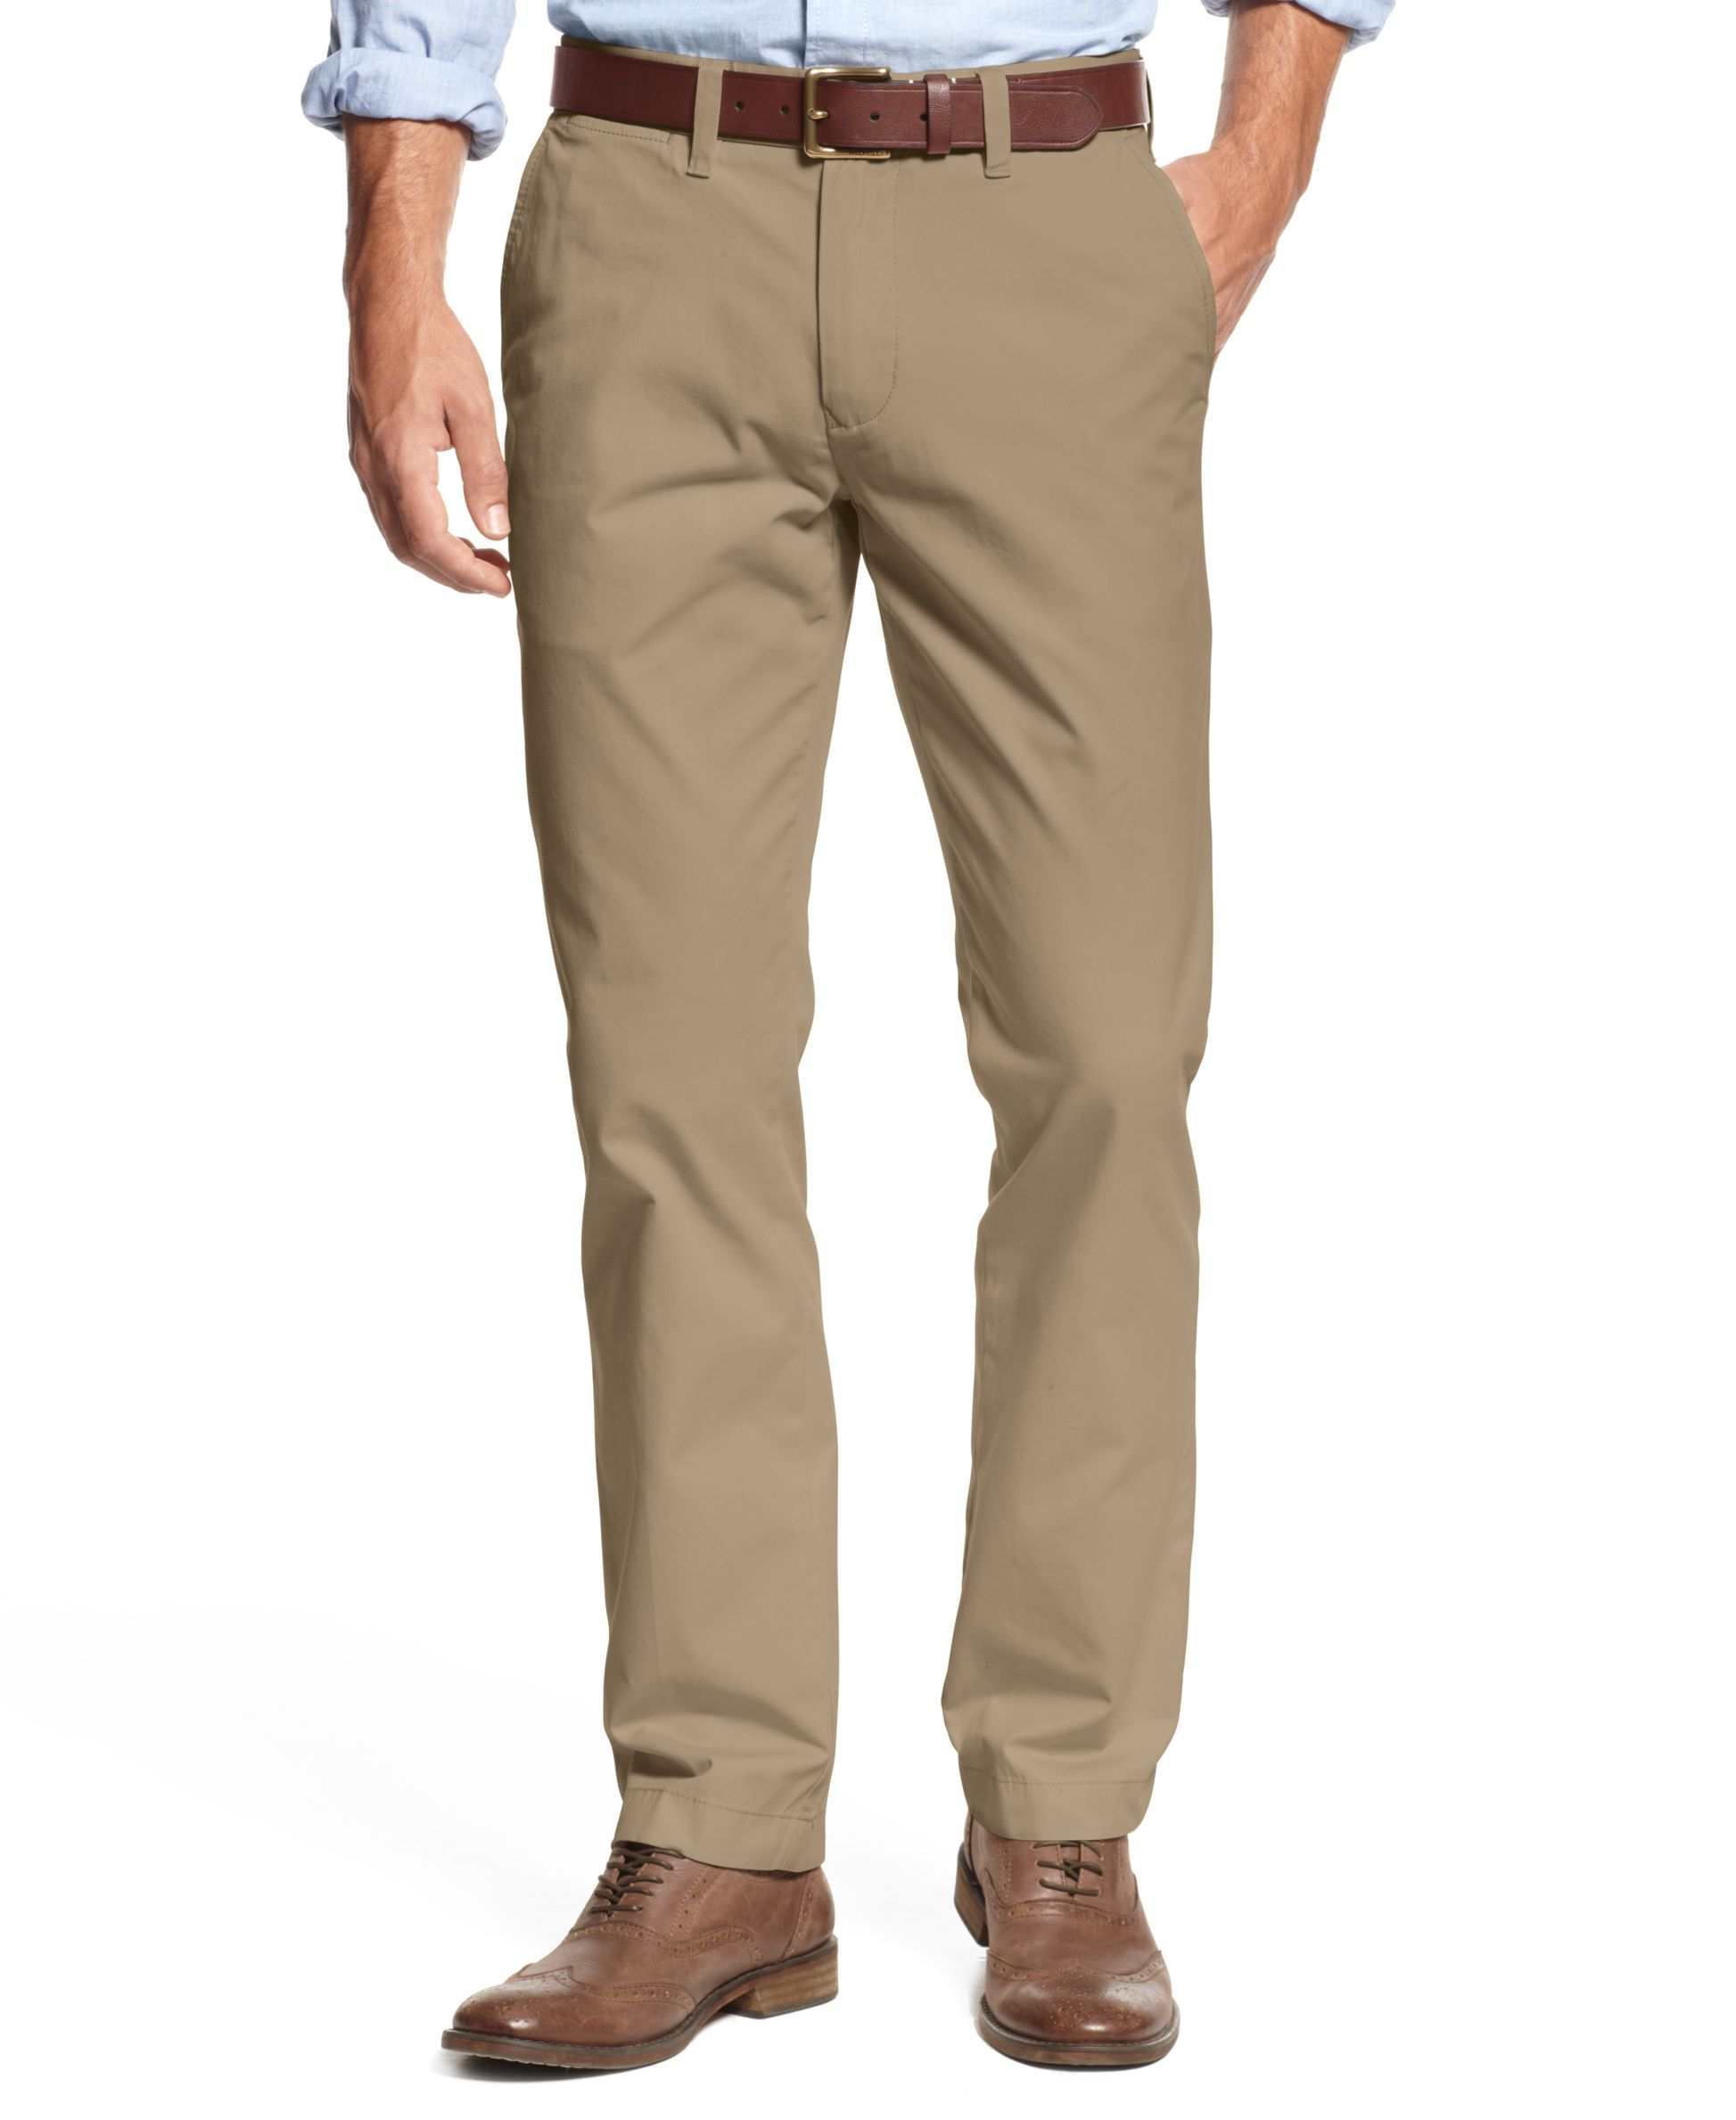 51fc6428 Men's TH Flex Stretch Slim-Fit Chino Pants, Created for Macy's | My ...